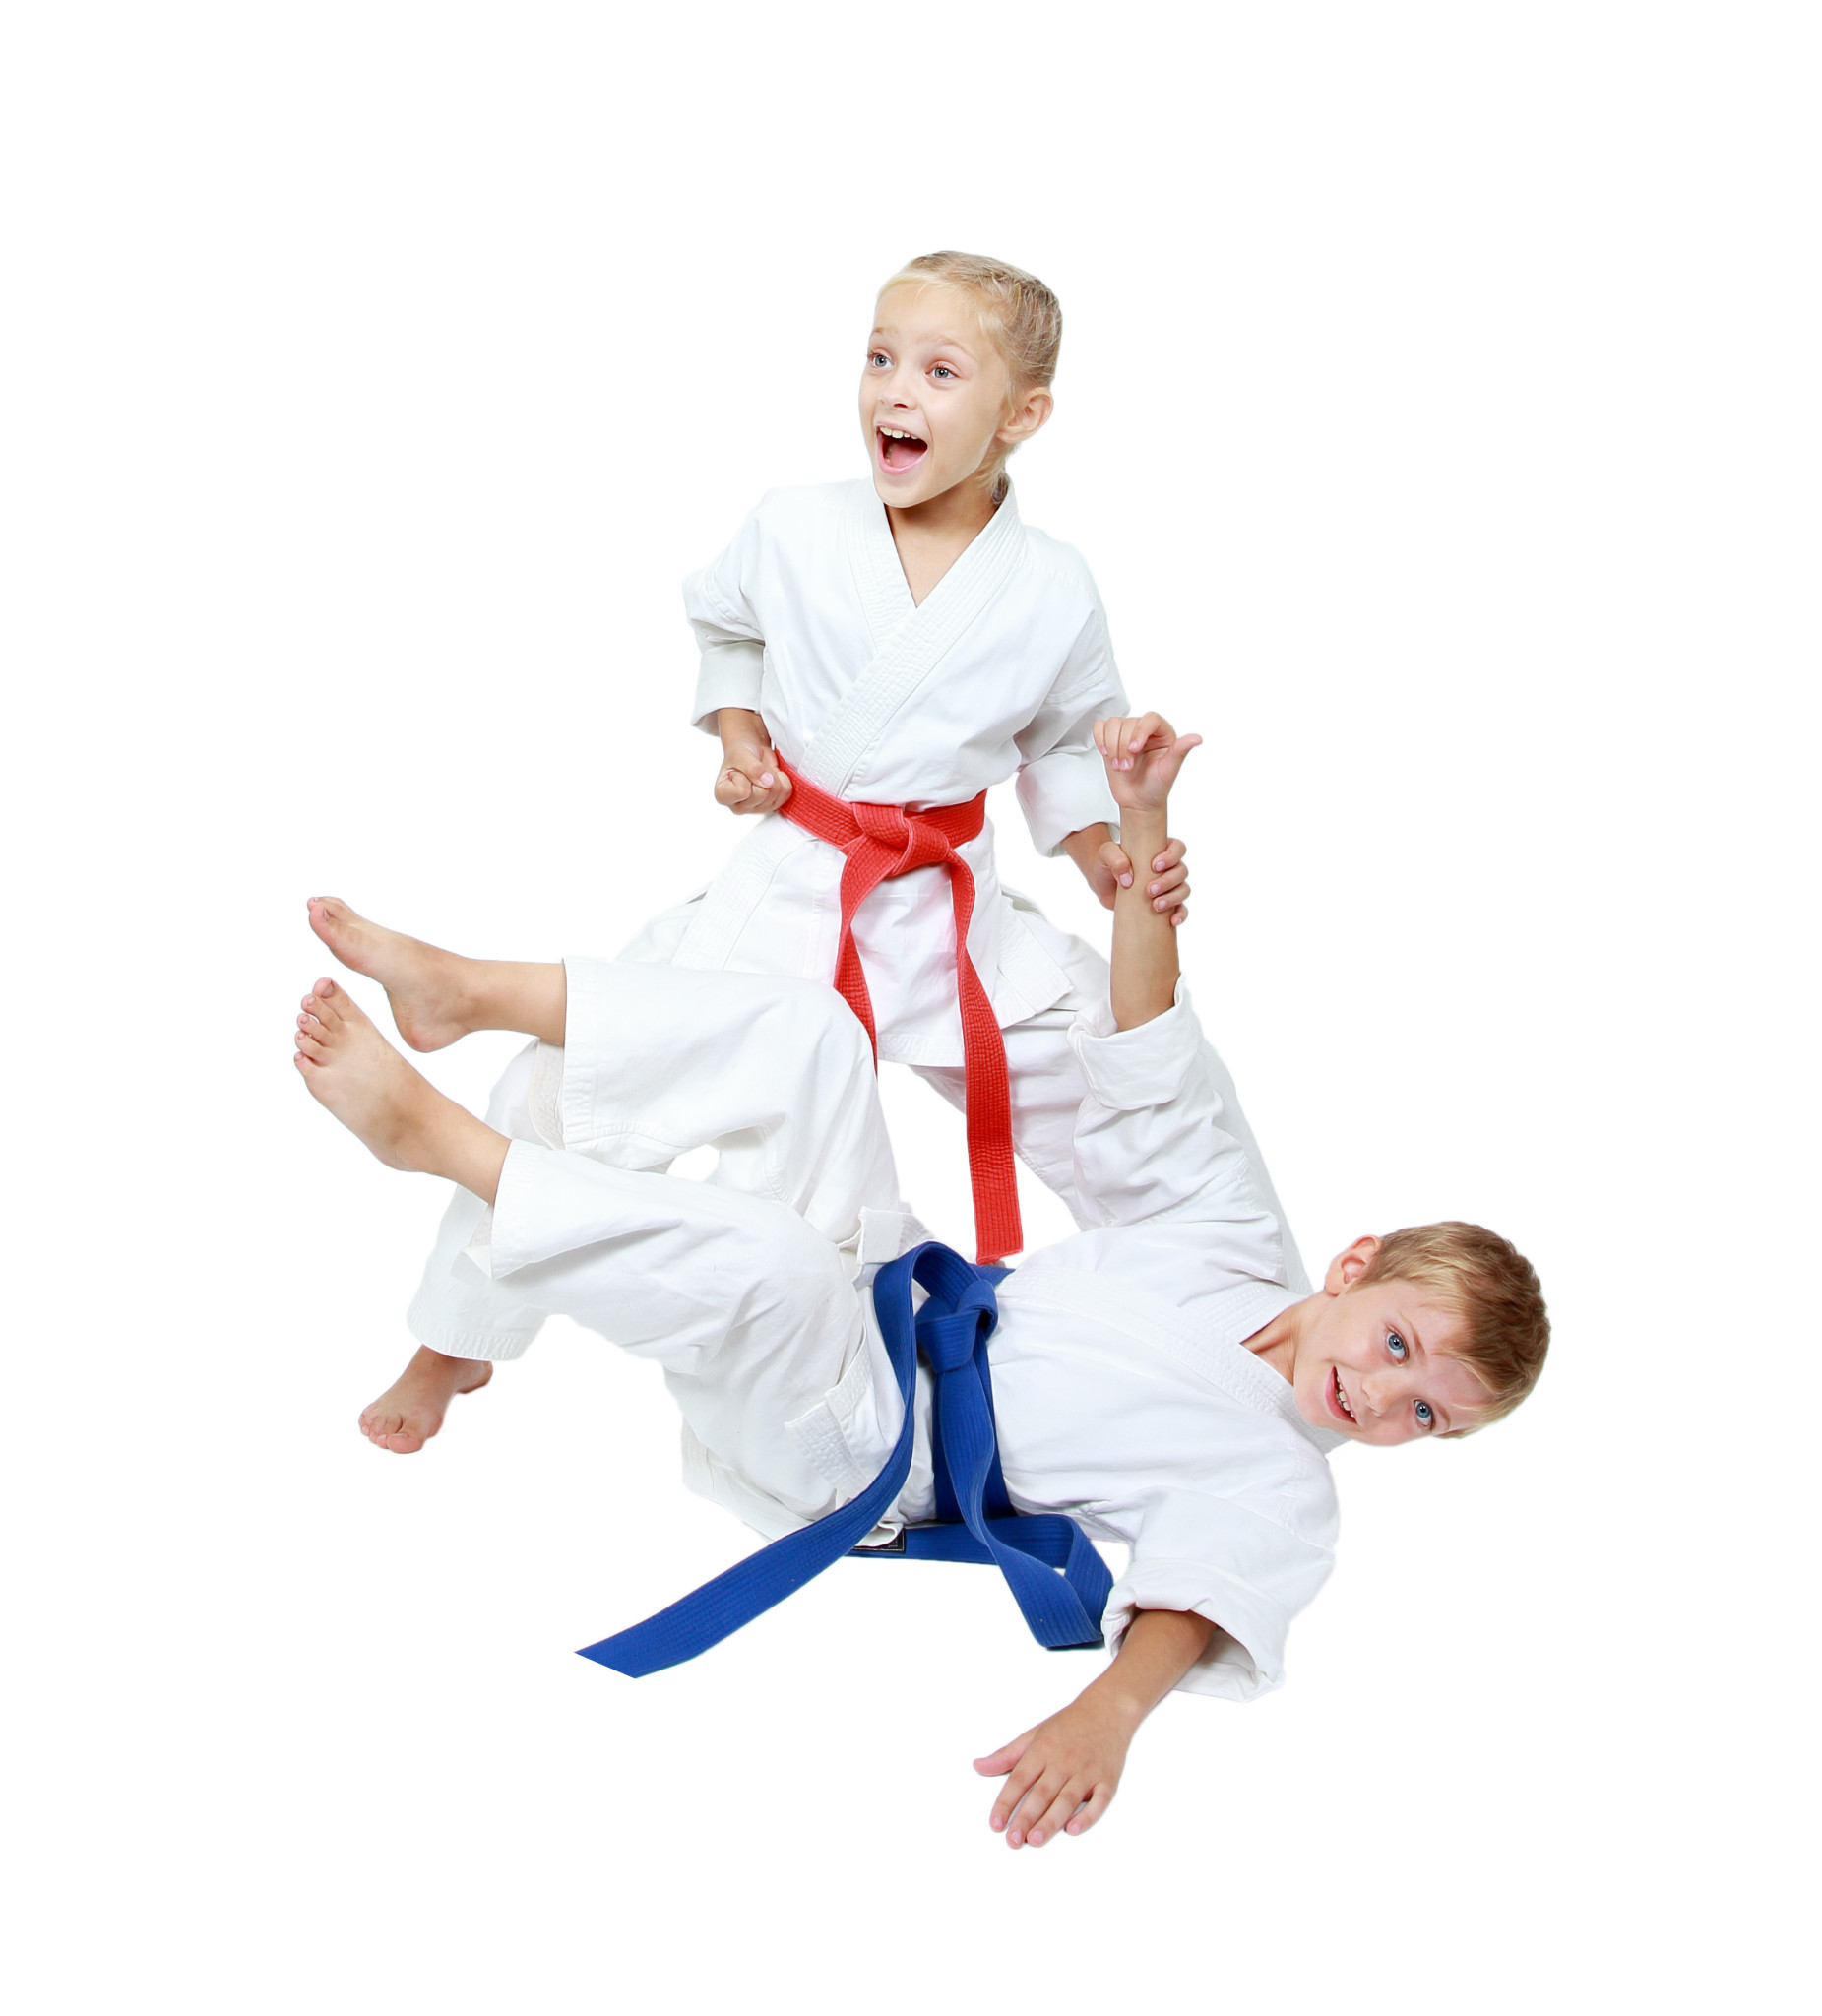 KIDS CLASS – FUN JUDO GAMES - Concorde Martial Arts